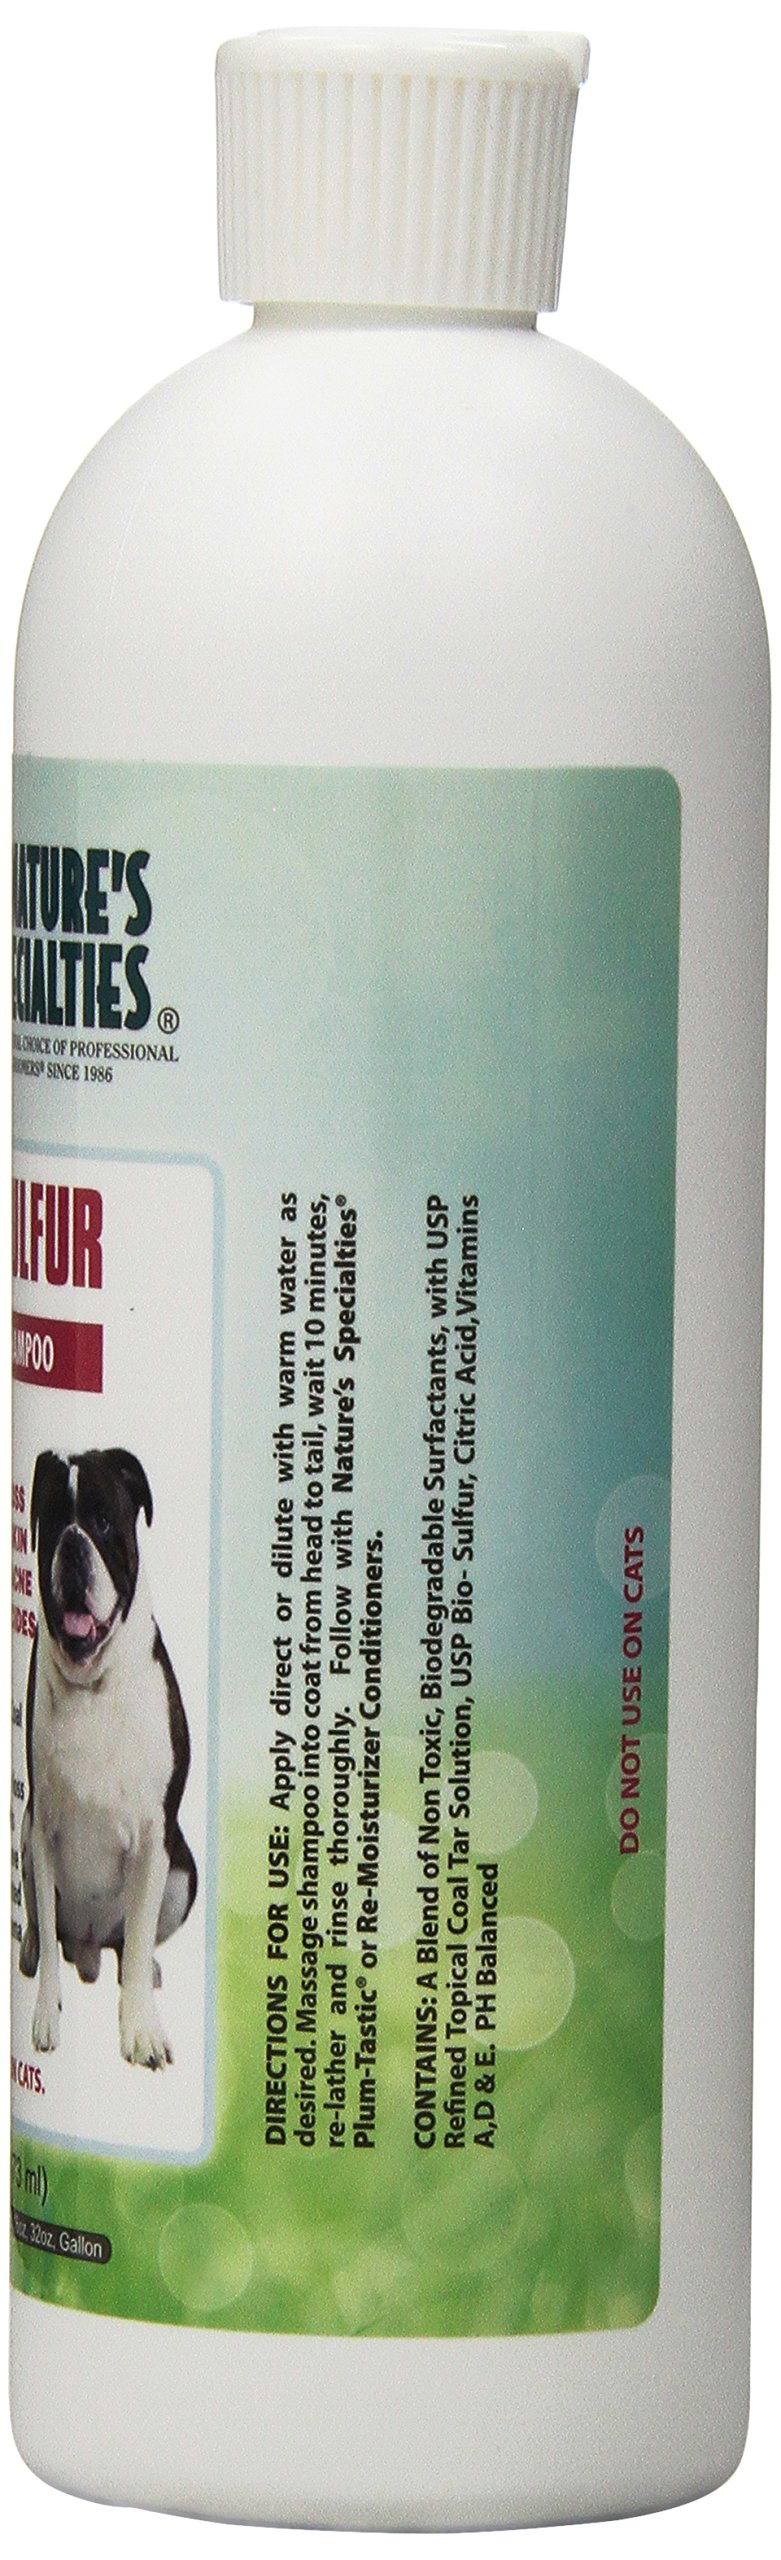 Nature's Specialties Tar and Sulfur Pet Shampoo, 16-Ounce by Nature's Specialties Mfg (Image #3)